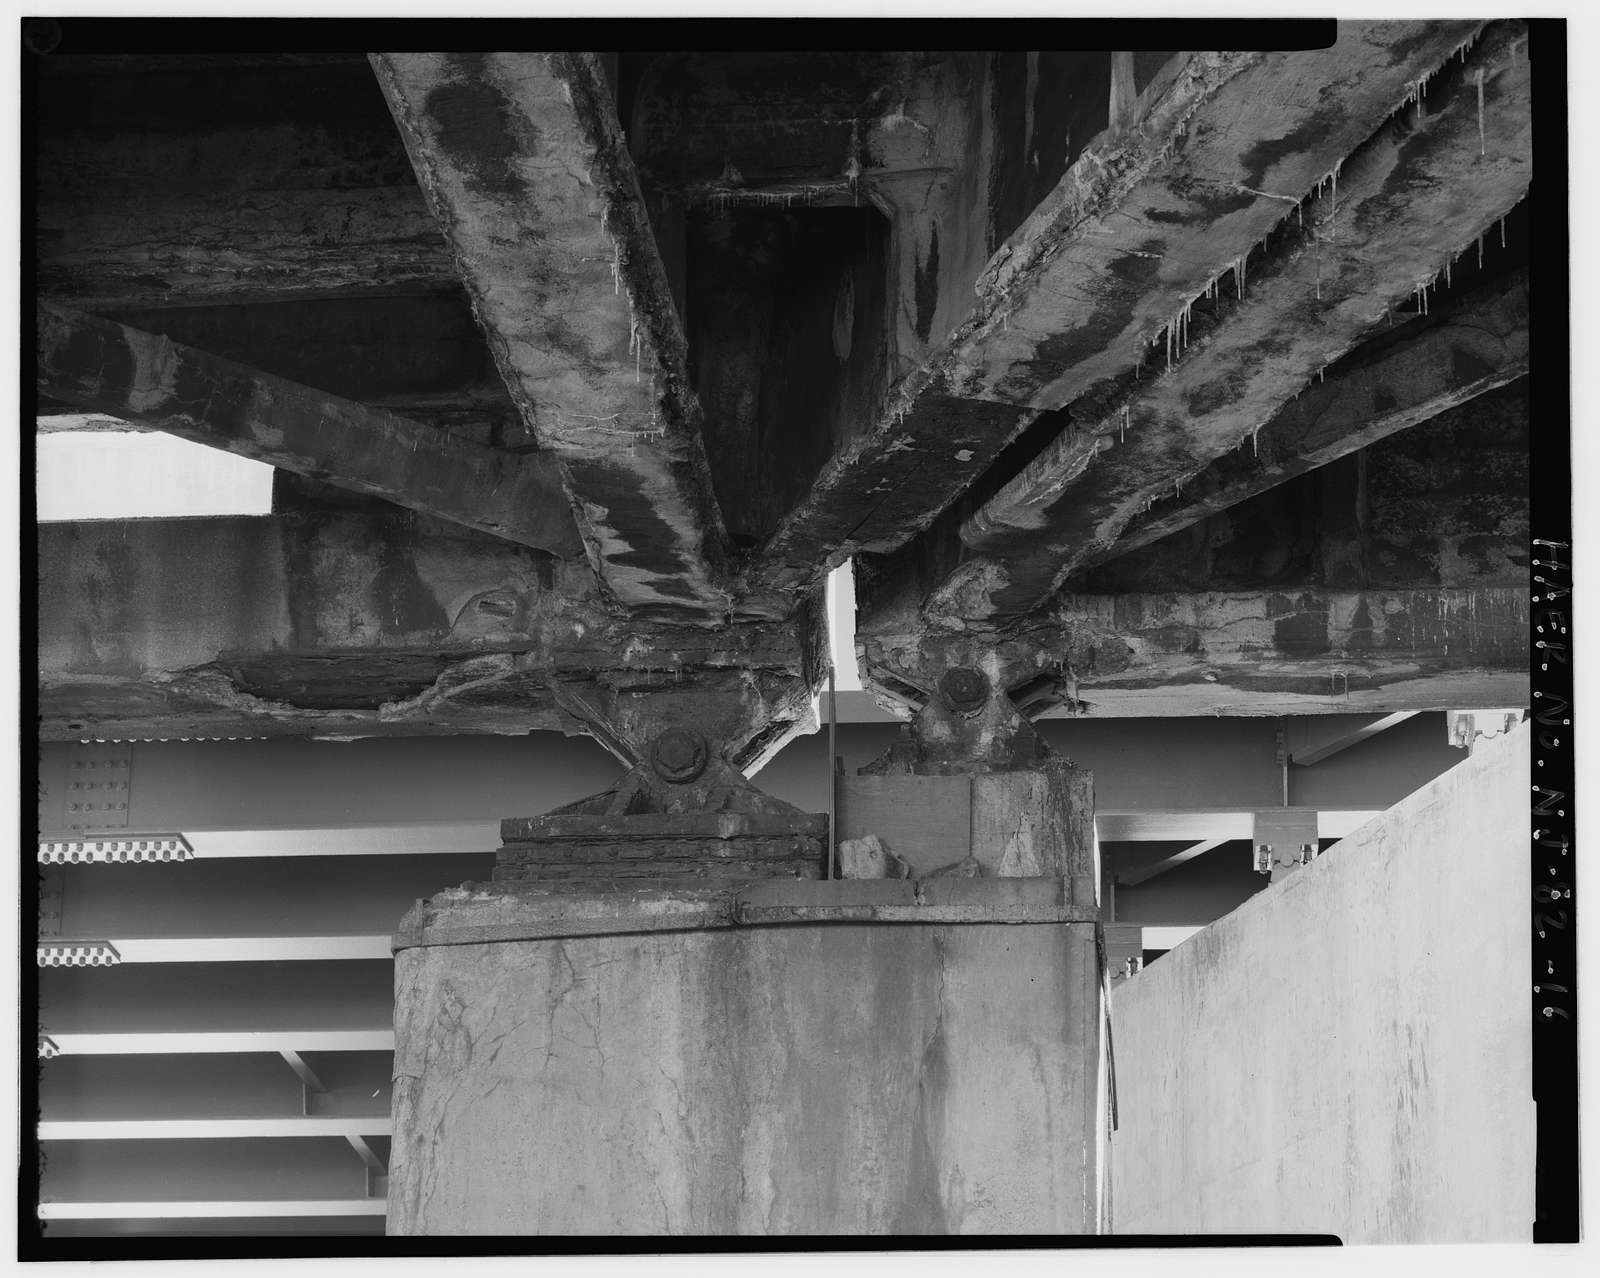 Route 1 Extension, Structure No. 0703-161, Spanning Conrail-Newark & New York Industrial tracks, Richards Lane, & Hawkins Street at Routes 1 & 9 Southbound, Newark, Essex County, NJ